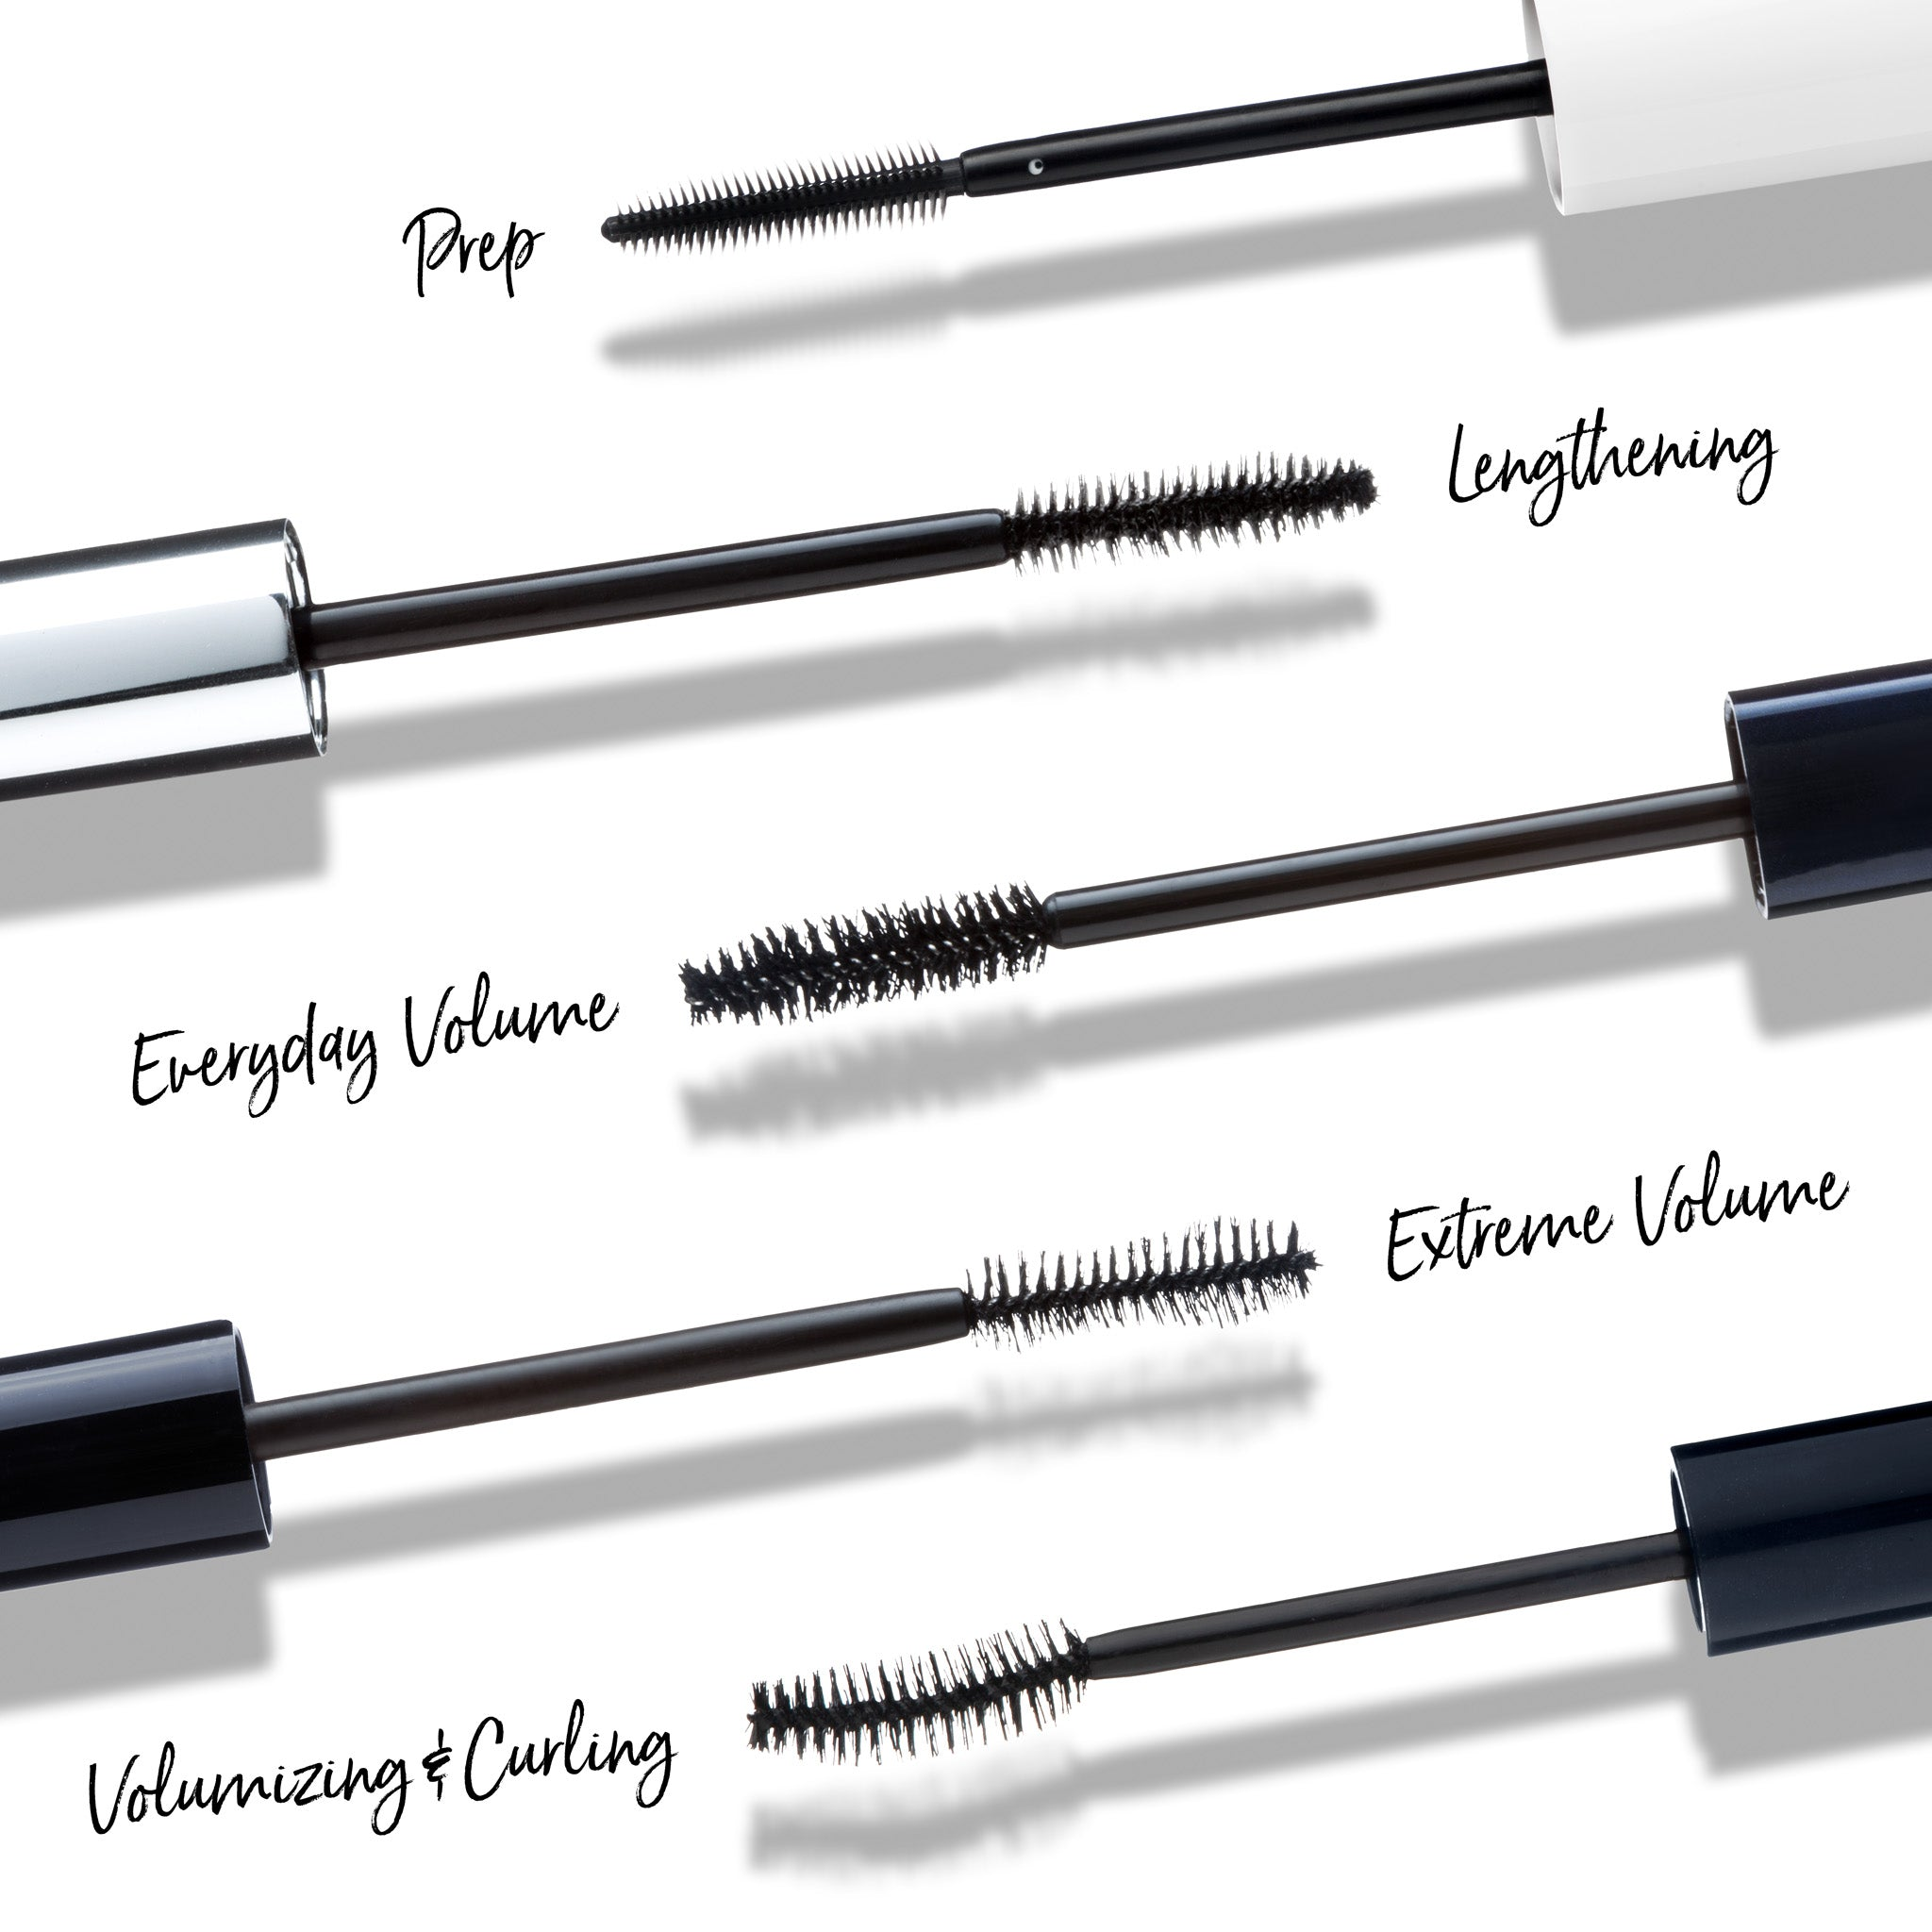 Lune+Aster mascara wands